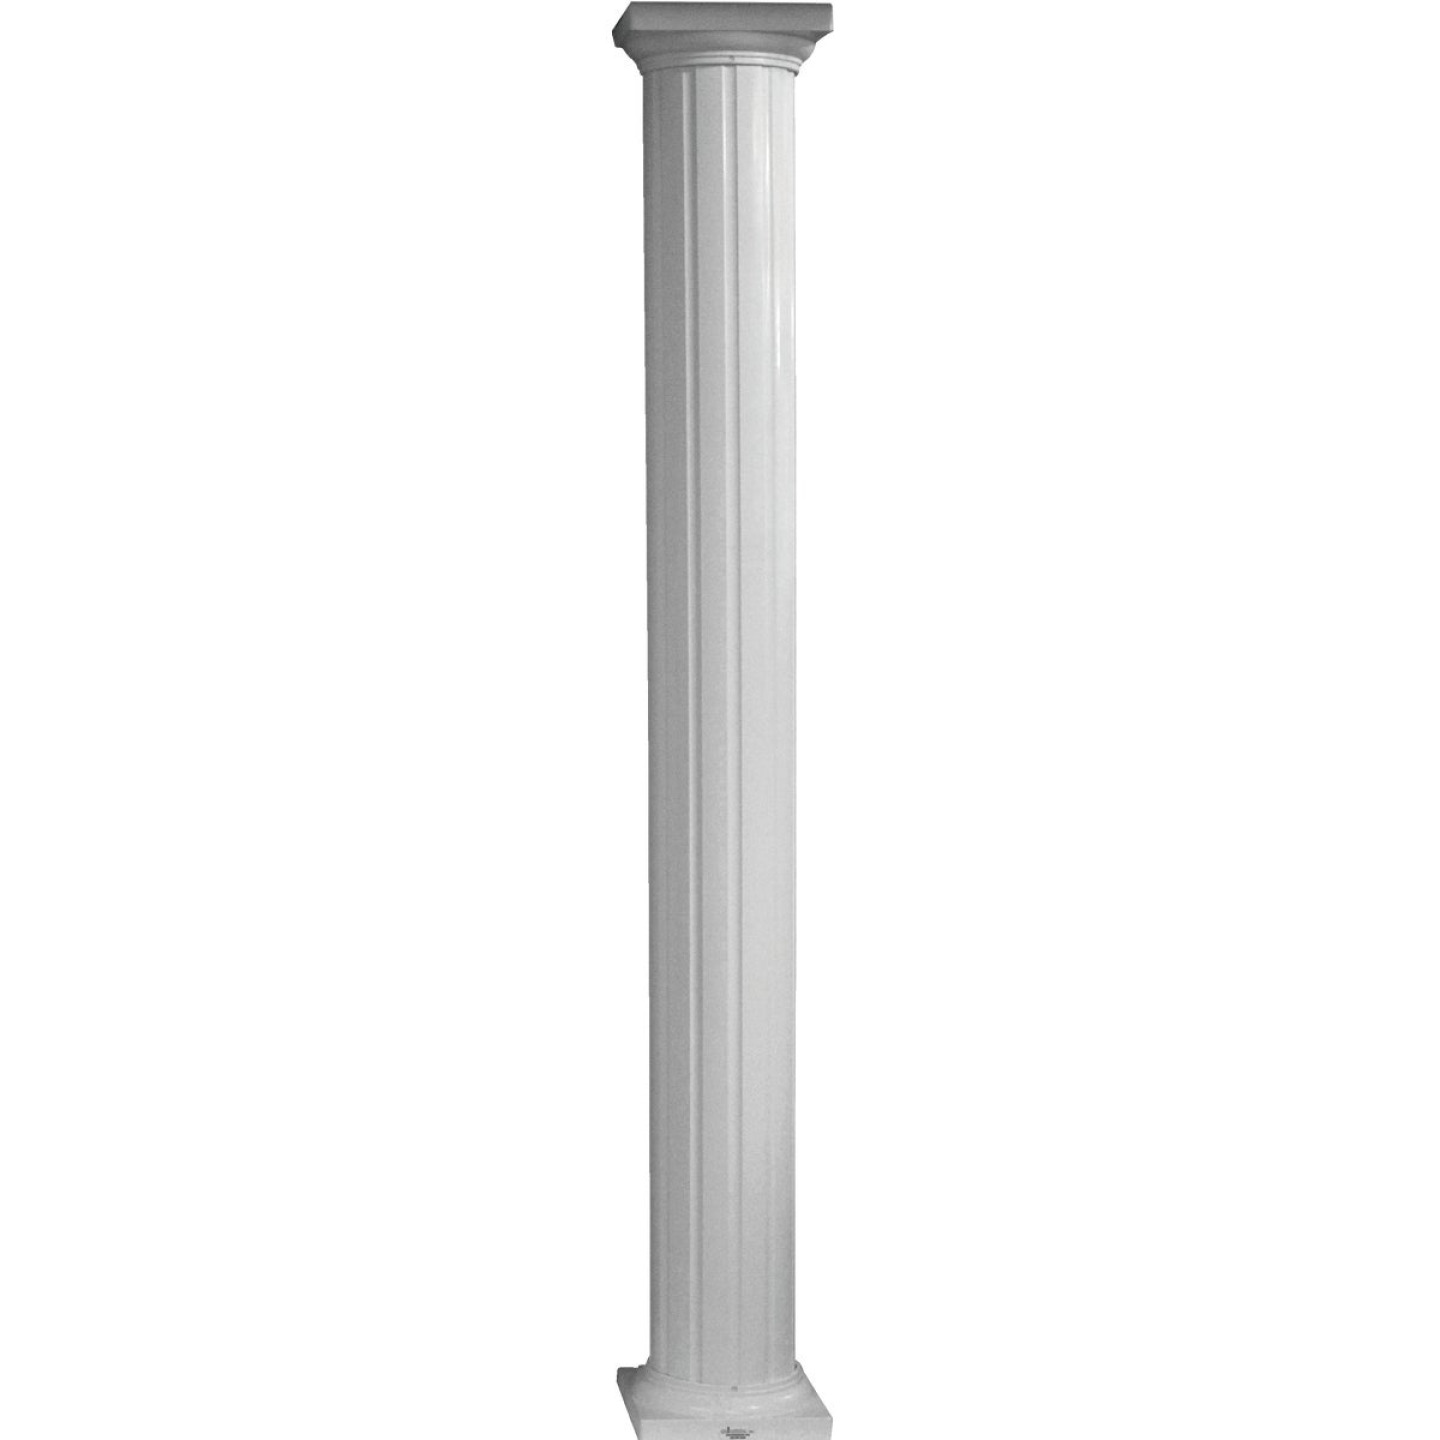 Crown Column 8 In. x 10 Ft. White Powder Coated Round Fluted Aluminum Column Image 1